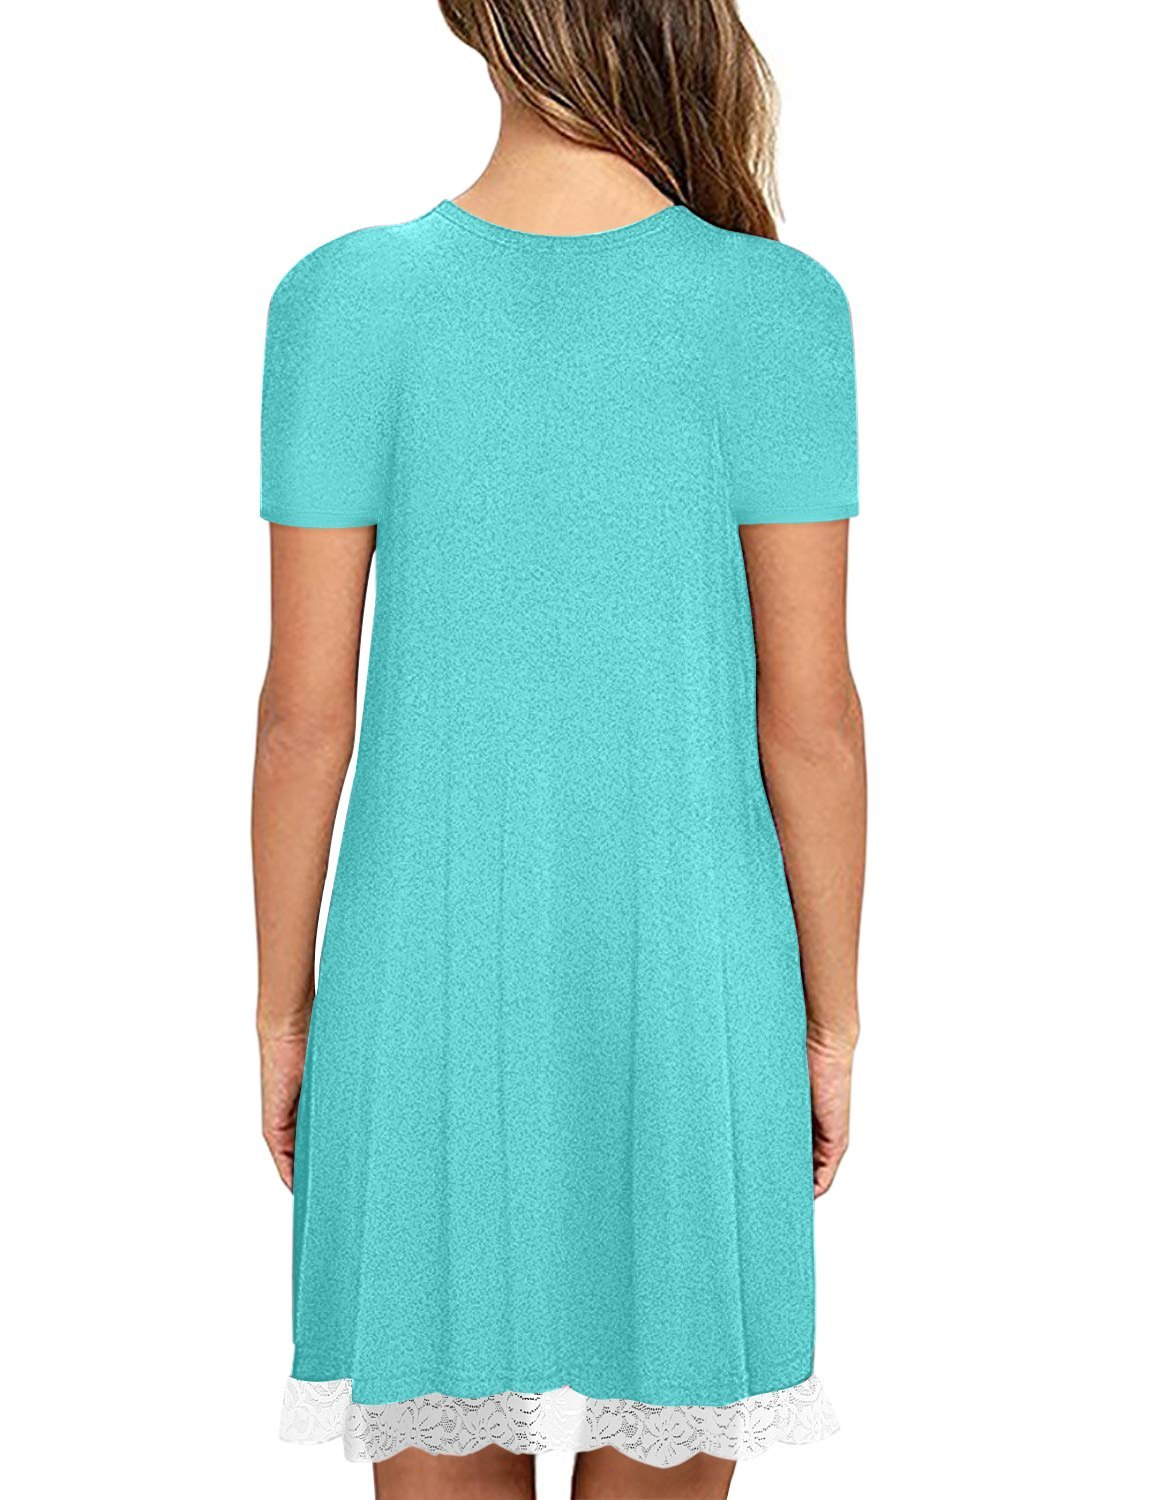 Eanklosco Womens Casual Short Sleeve Plain Pocket V Neck T Shirt Tunic Dress (NileBlue-2, 2XL)